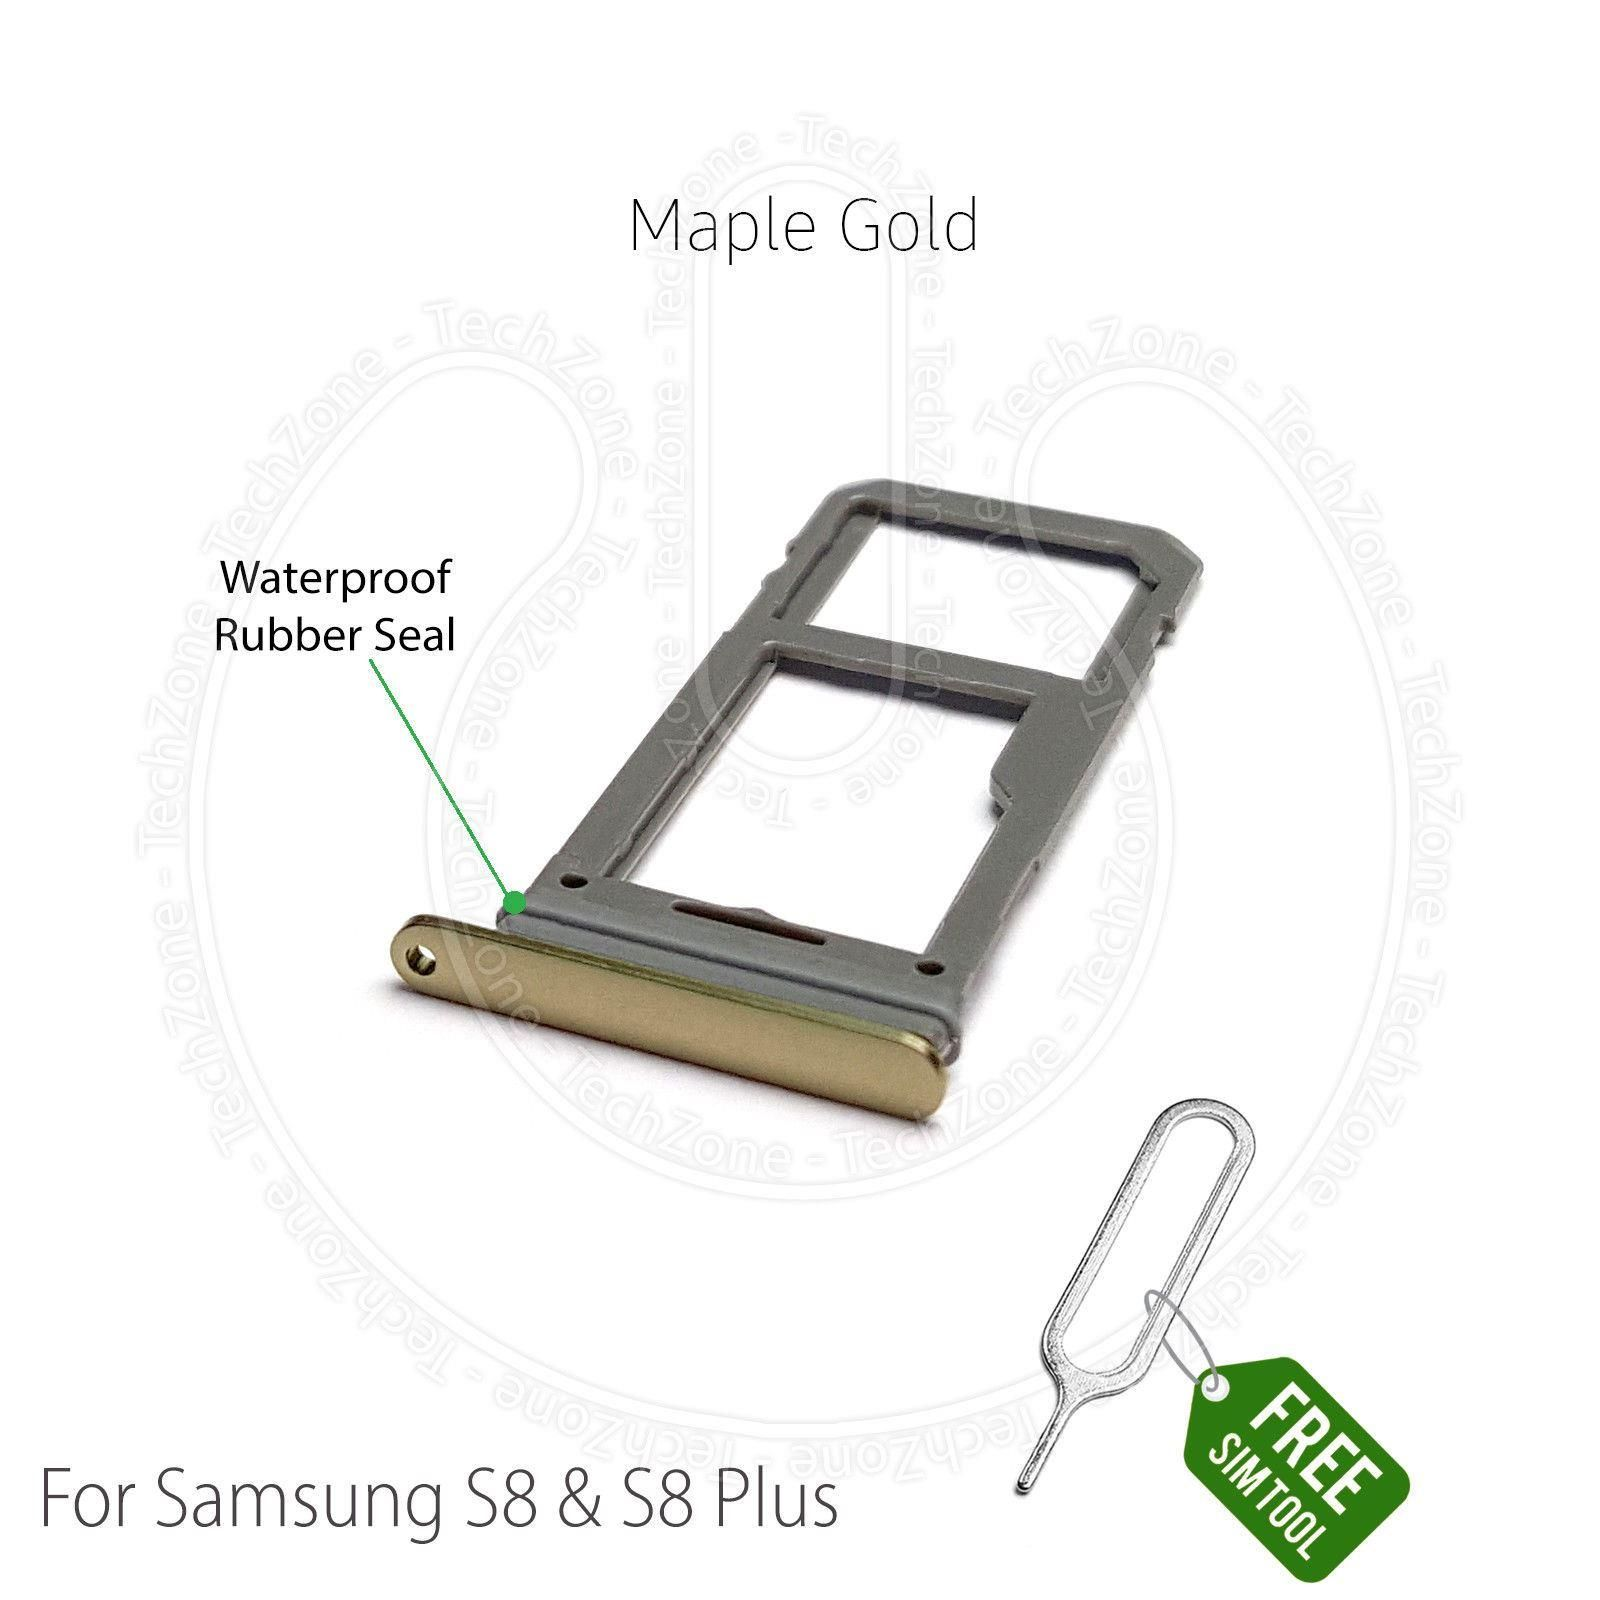 Samsung Galaxy S8 Sim Karte.Sim Card Sd Tray Holder For Samsung Galaxy S8 G950f S8 Plus G955f Maple Gold